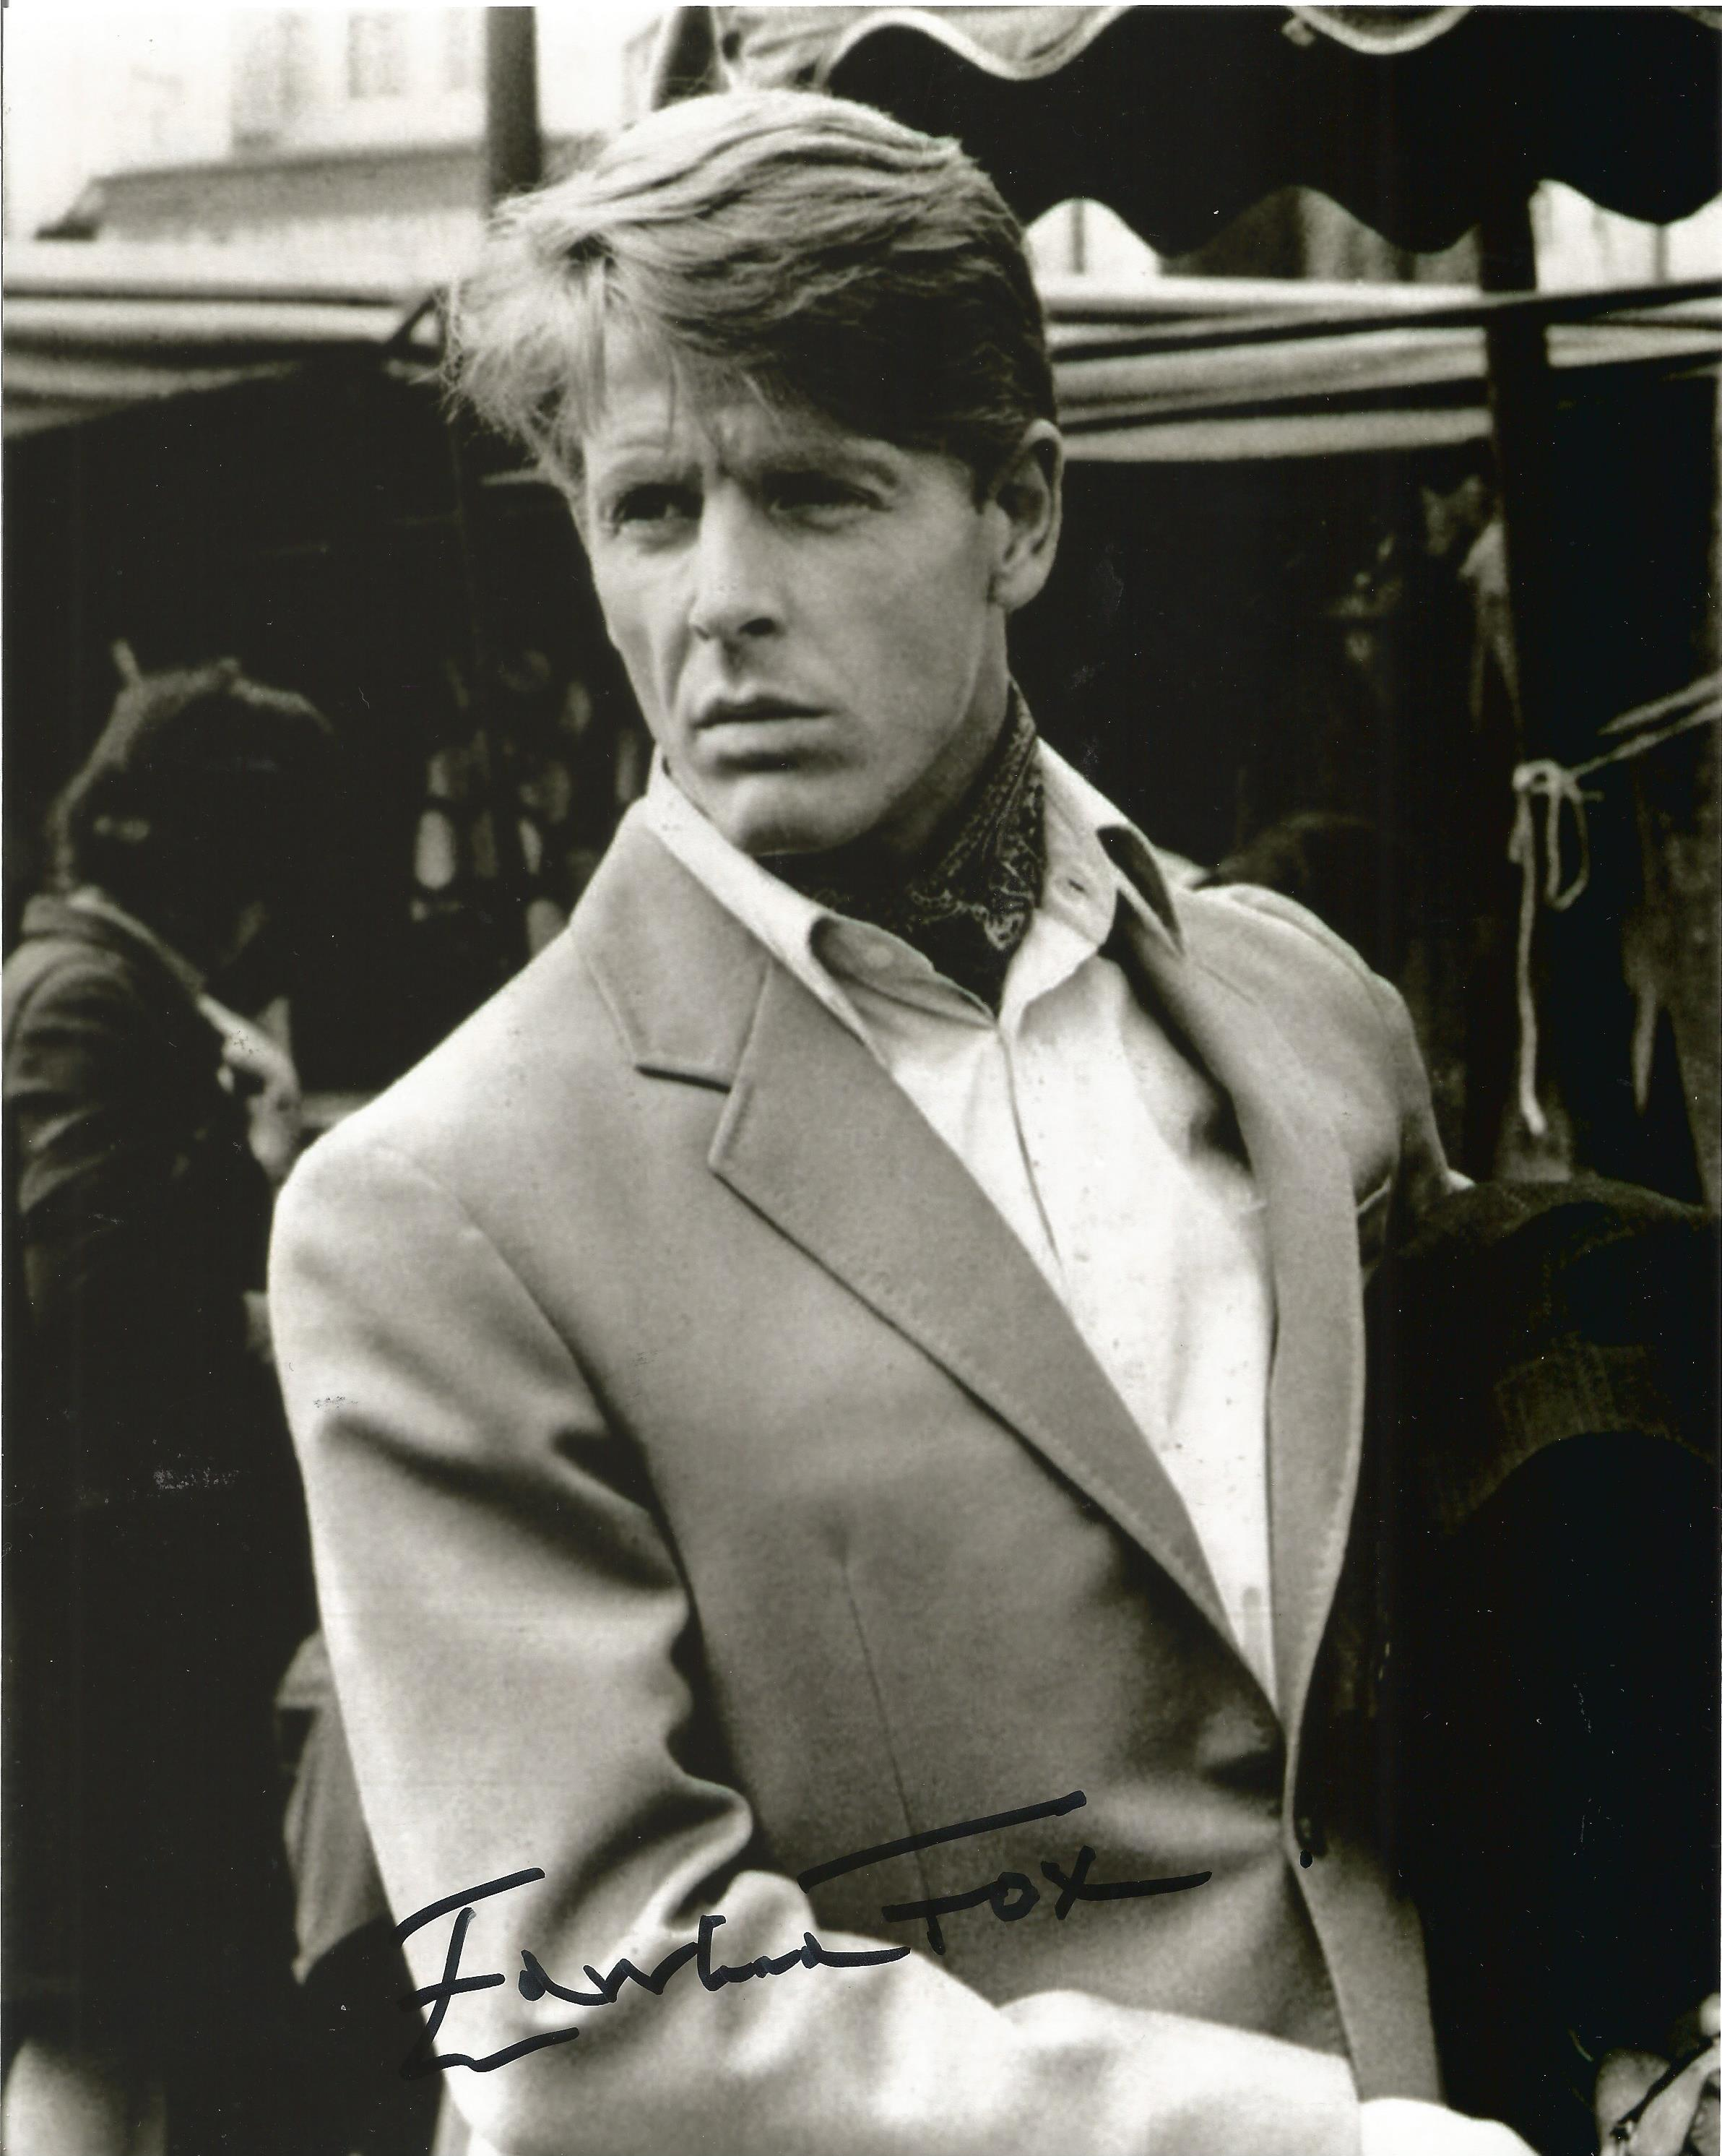 Edward Fox signed 10x8 black and white photo. Edward Charles Morice Fox OBE born 13 April 1937 is an